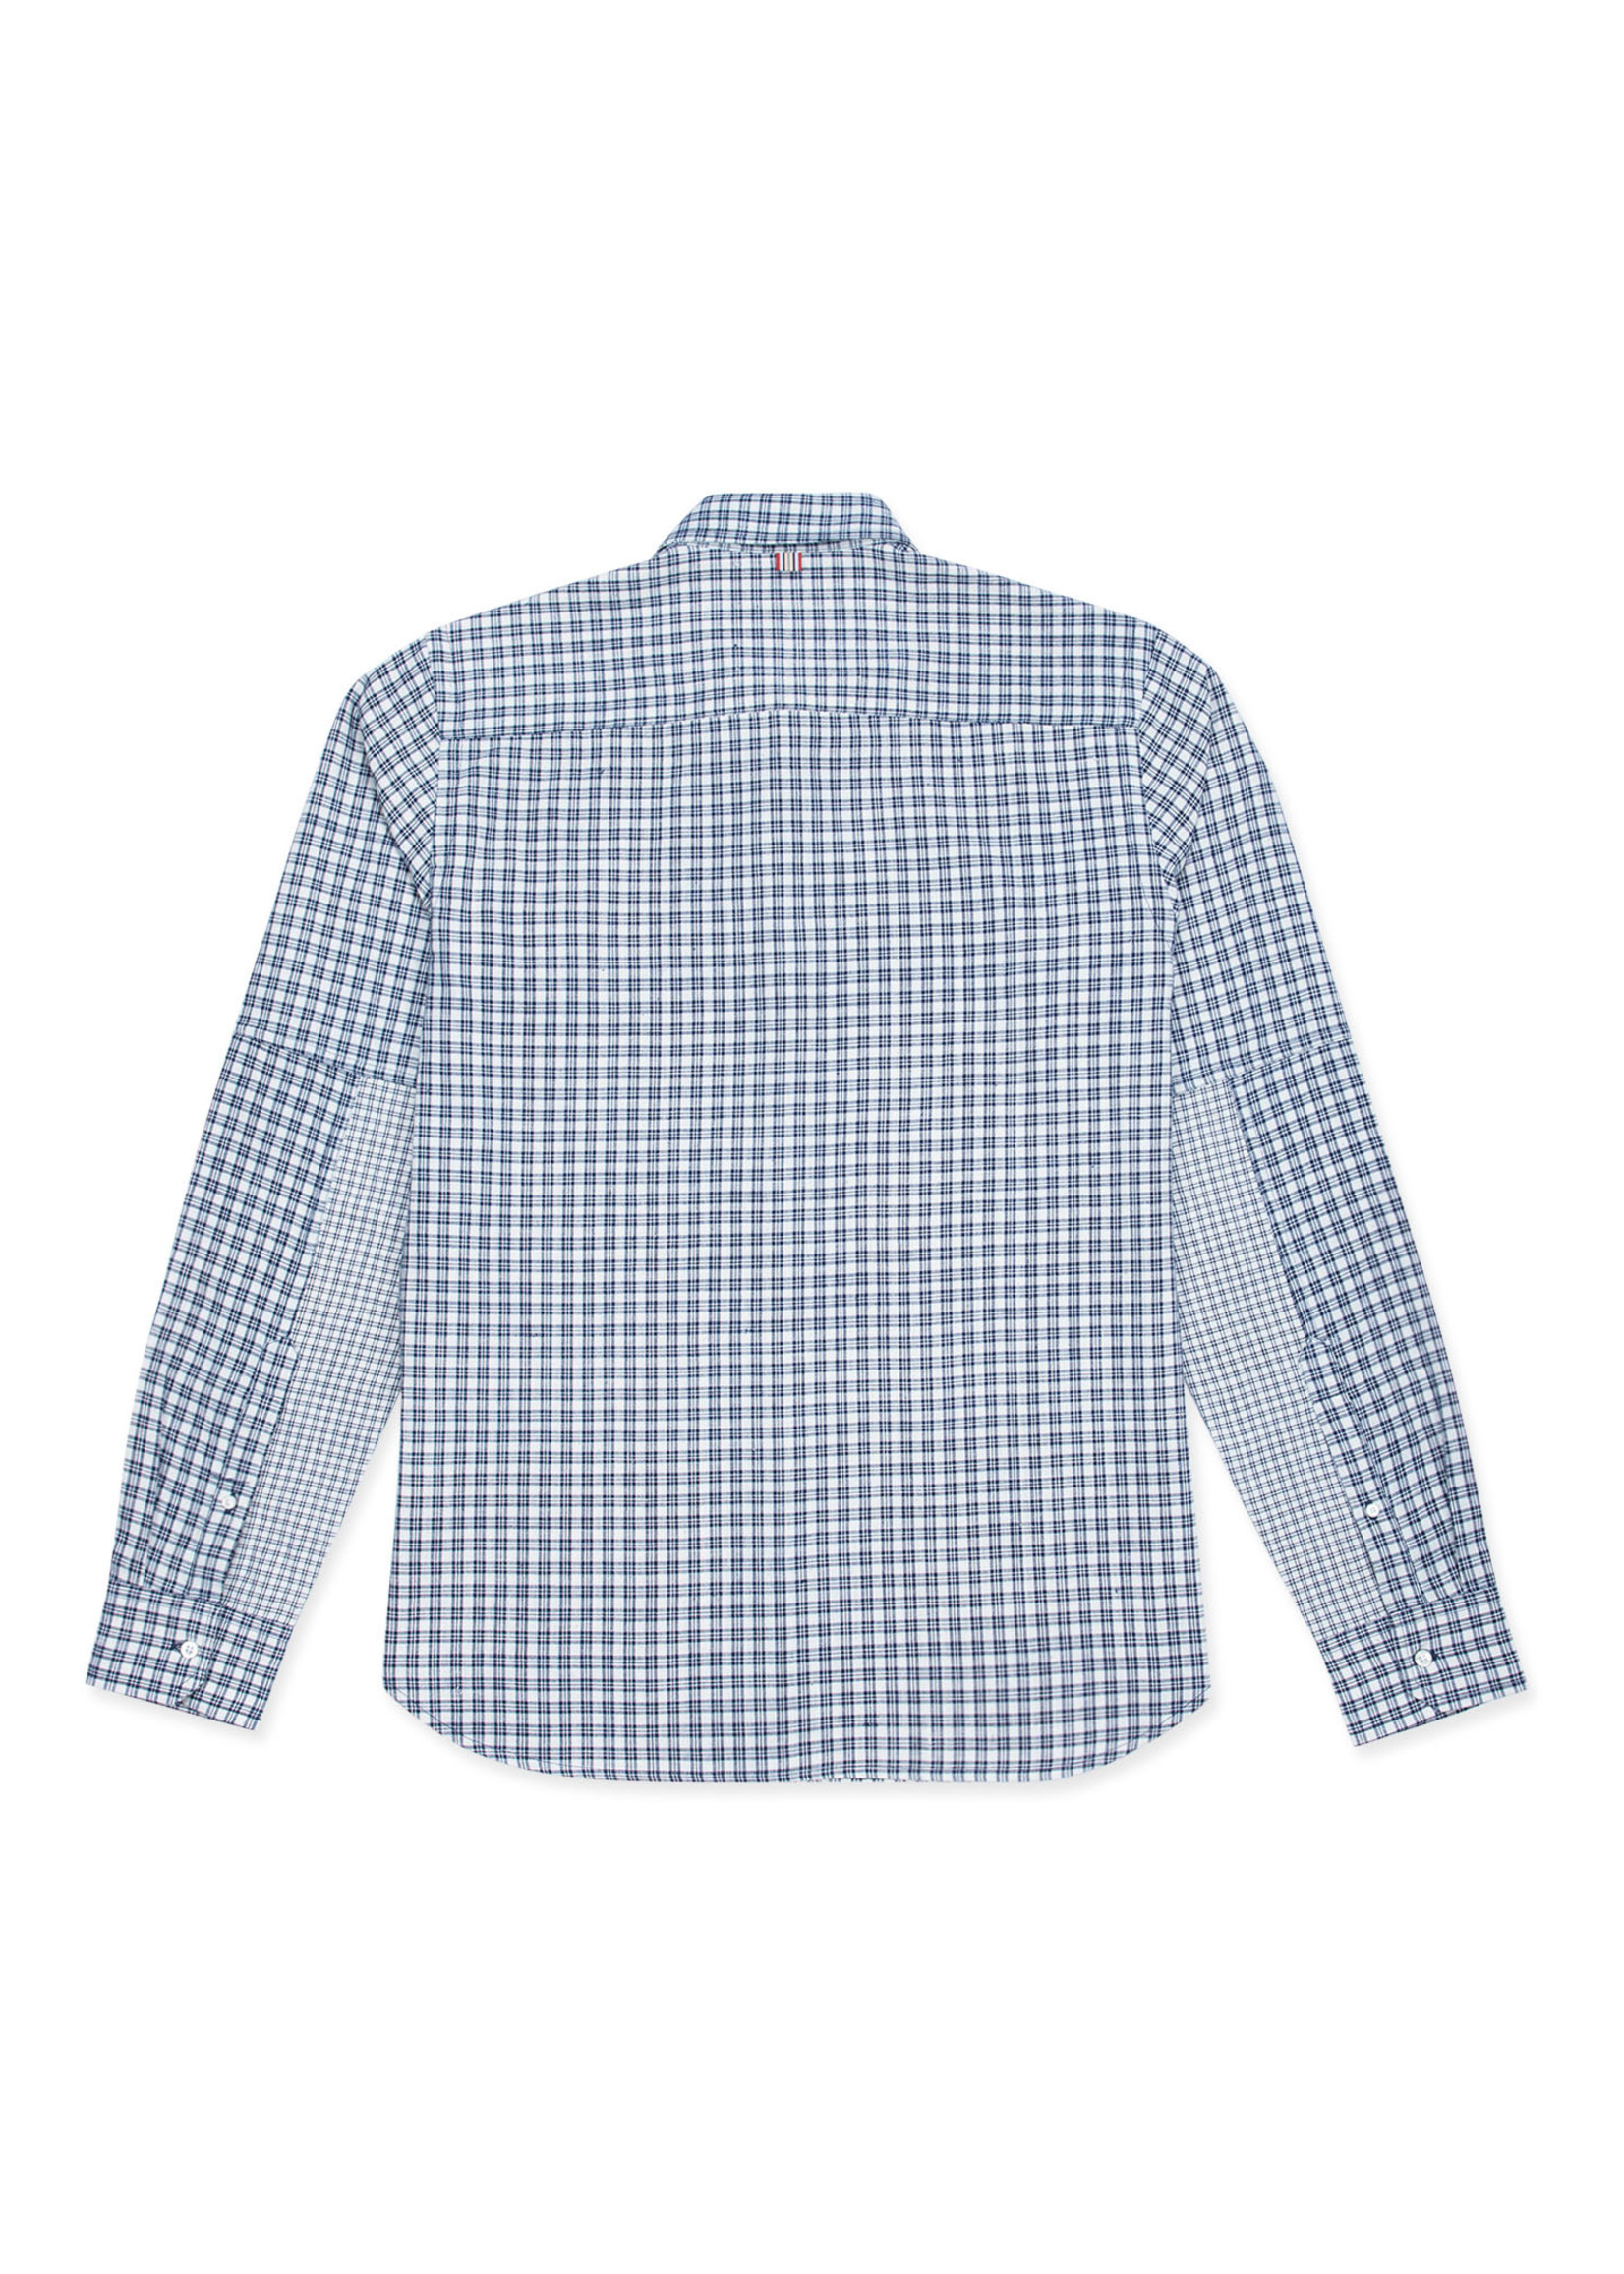 Kardo Kardo Stevie Navy Tattersall Sport Shirt